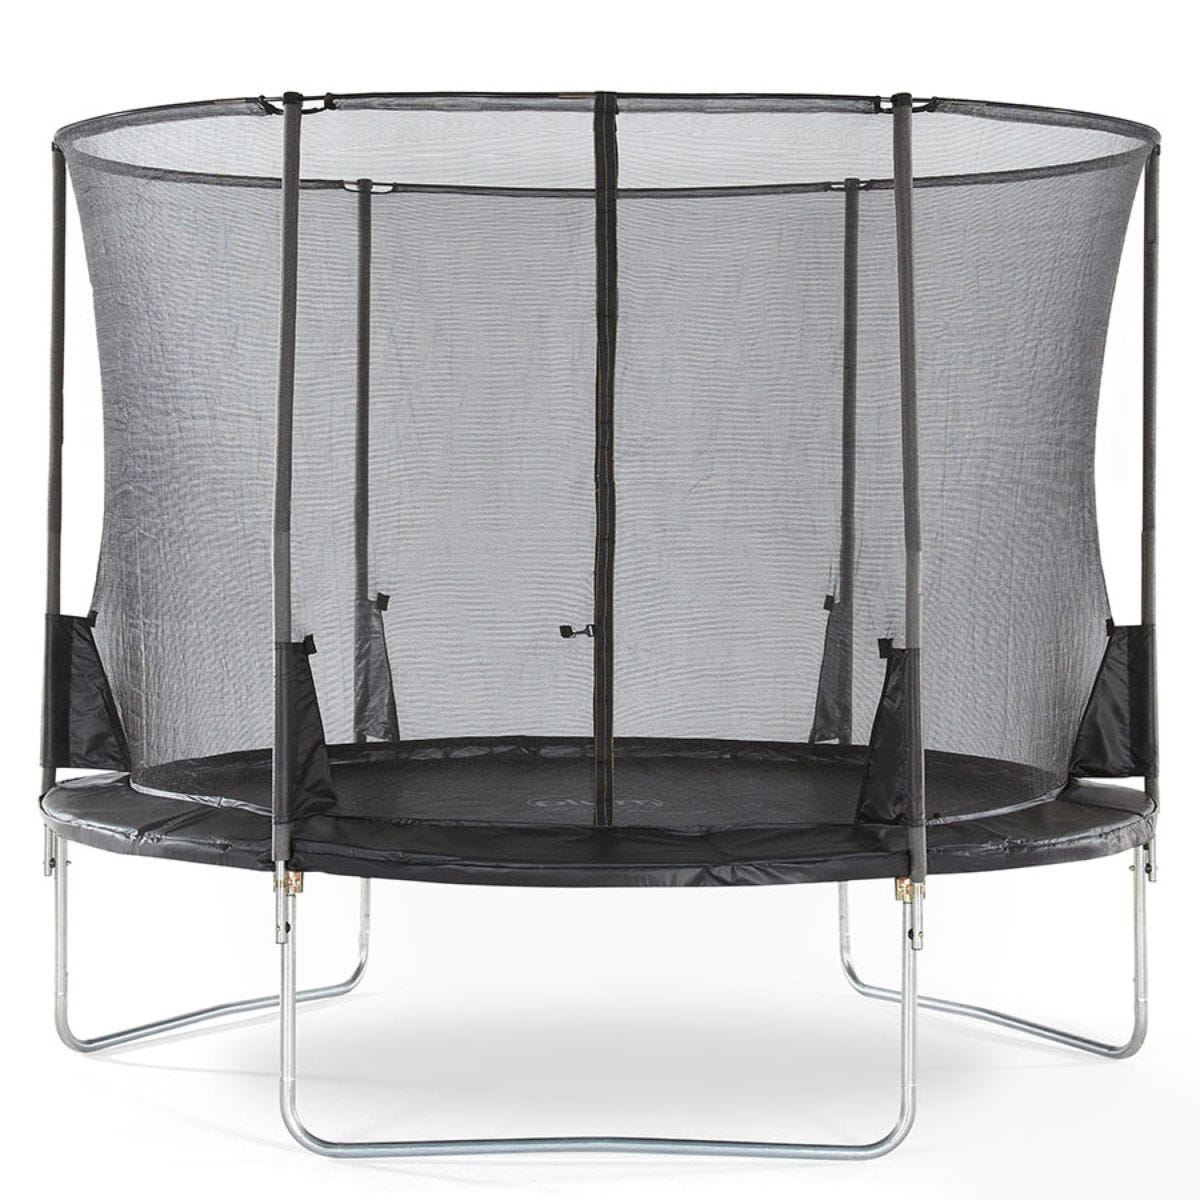 Plum 10ft Space Zone II Springsafe Trampoline and Enclosure